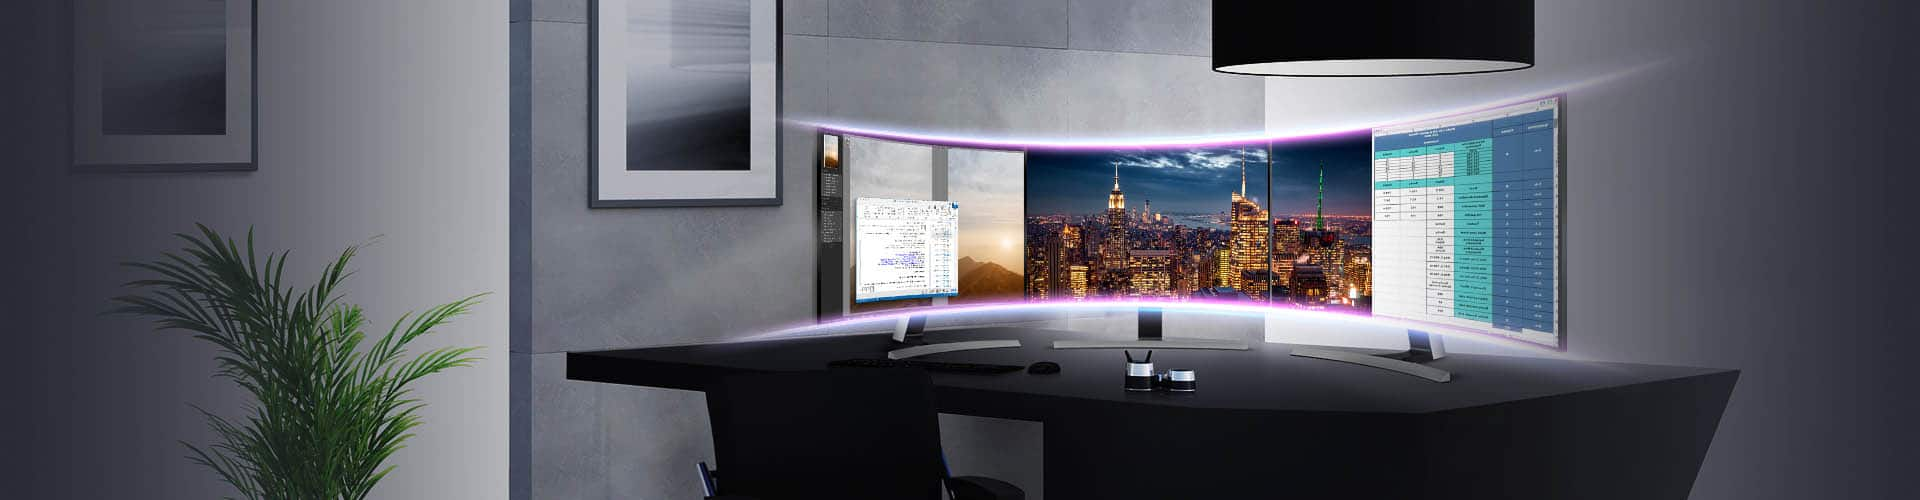 Is A Curved Monitor Worth It For Gaming?